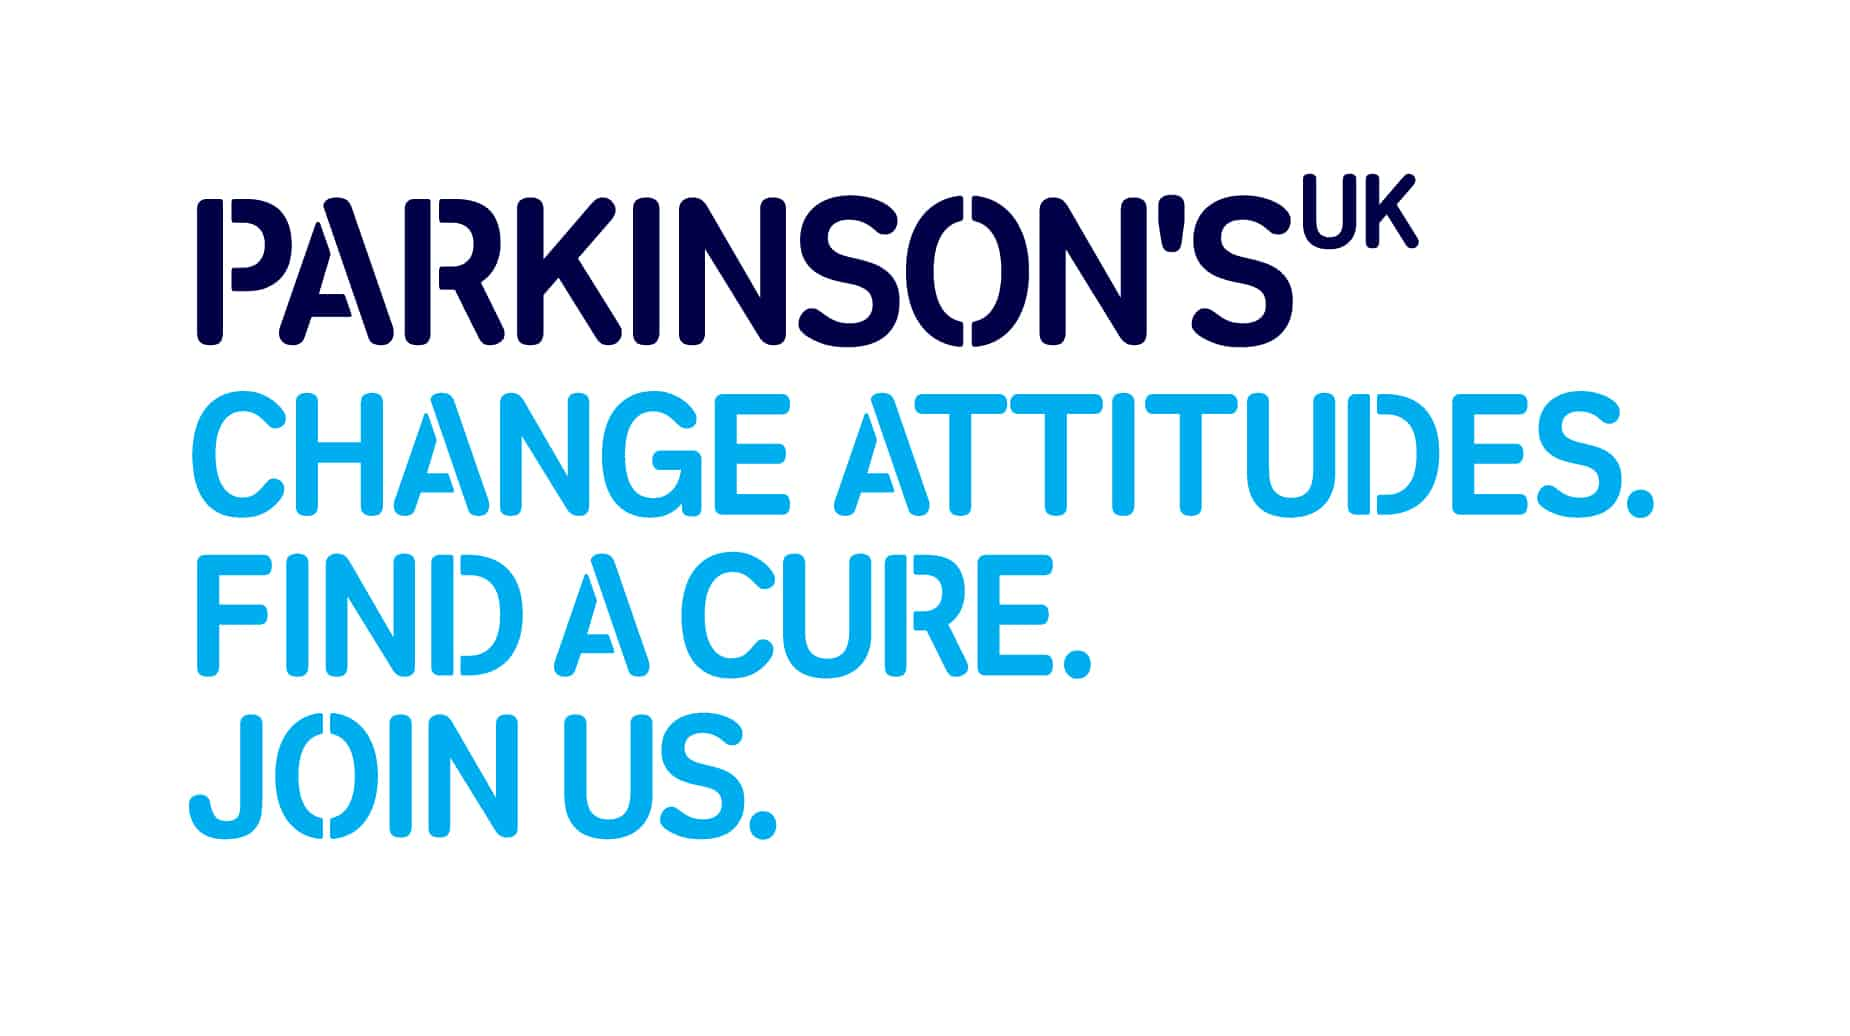 Parkinsons Disease Society of the United Kingdom